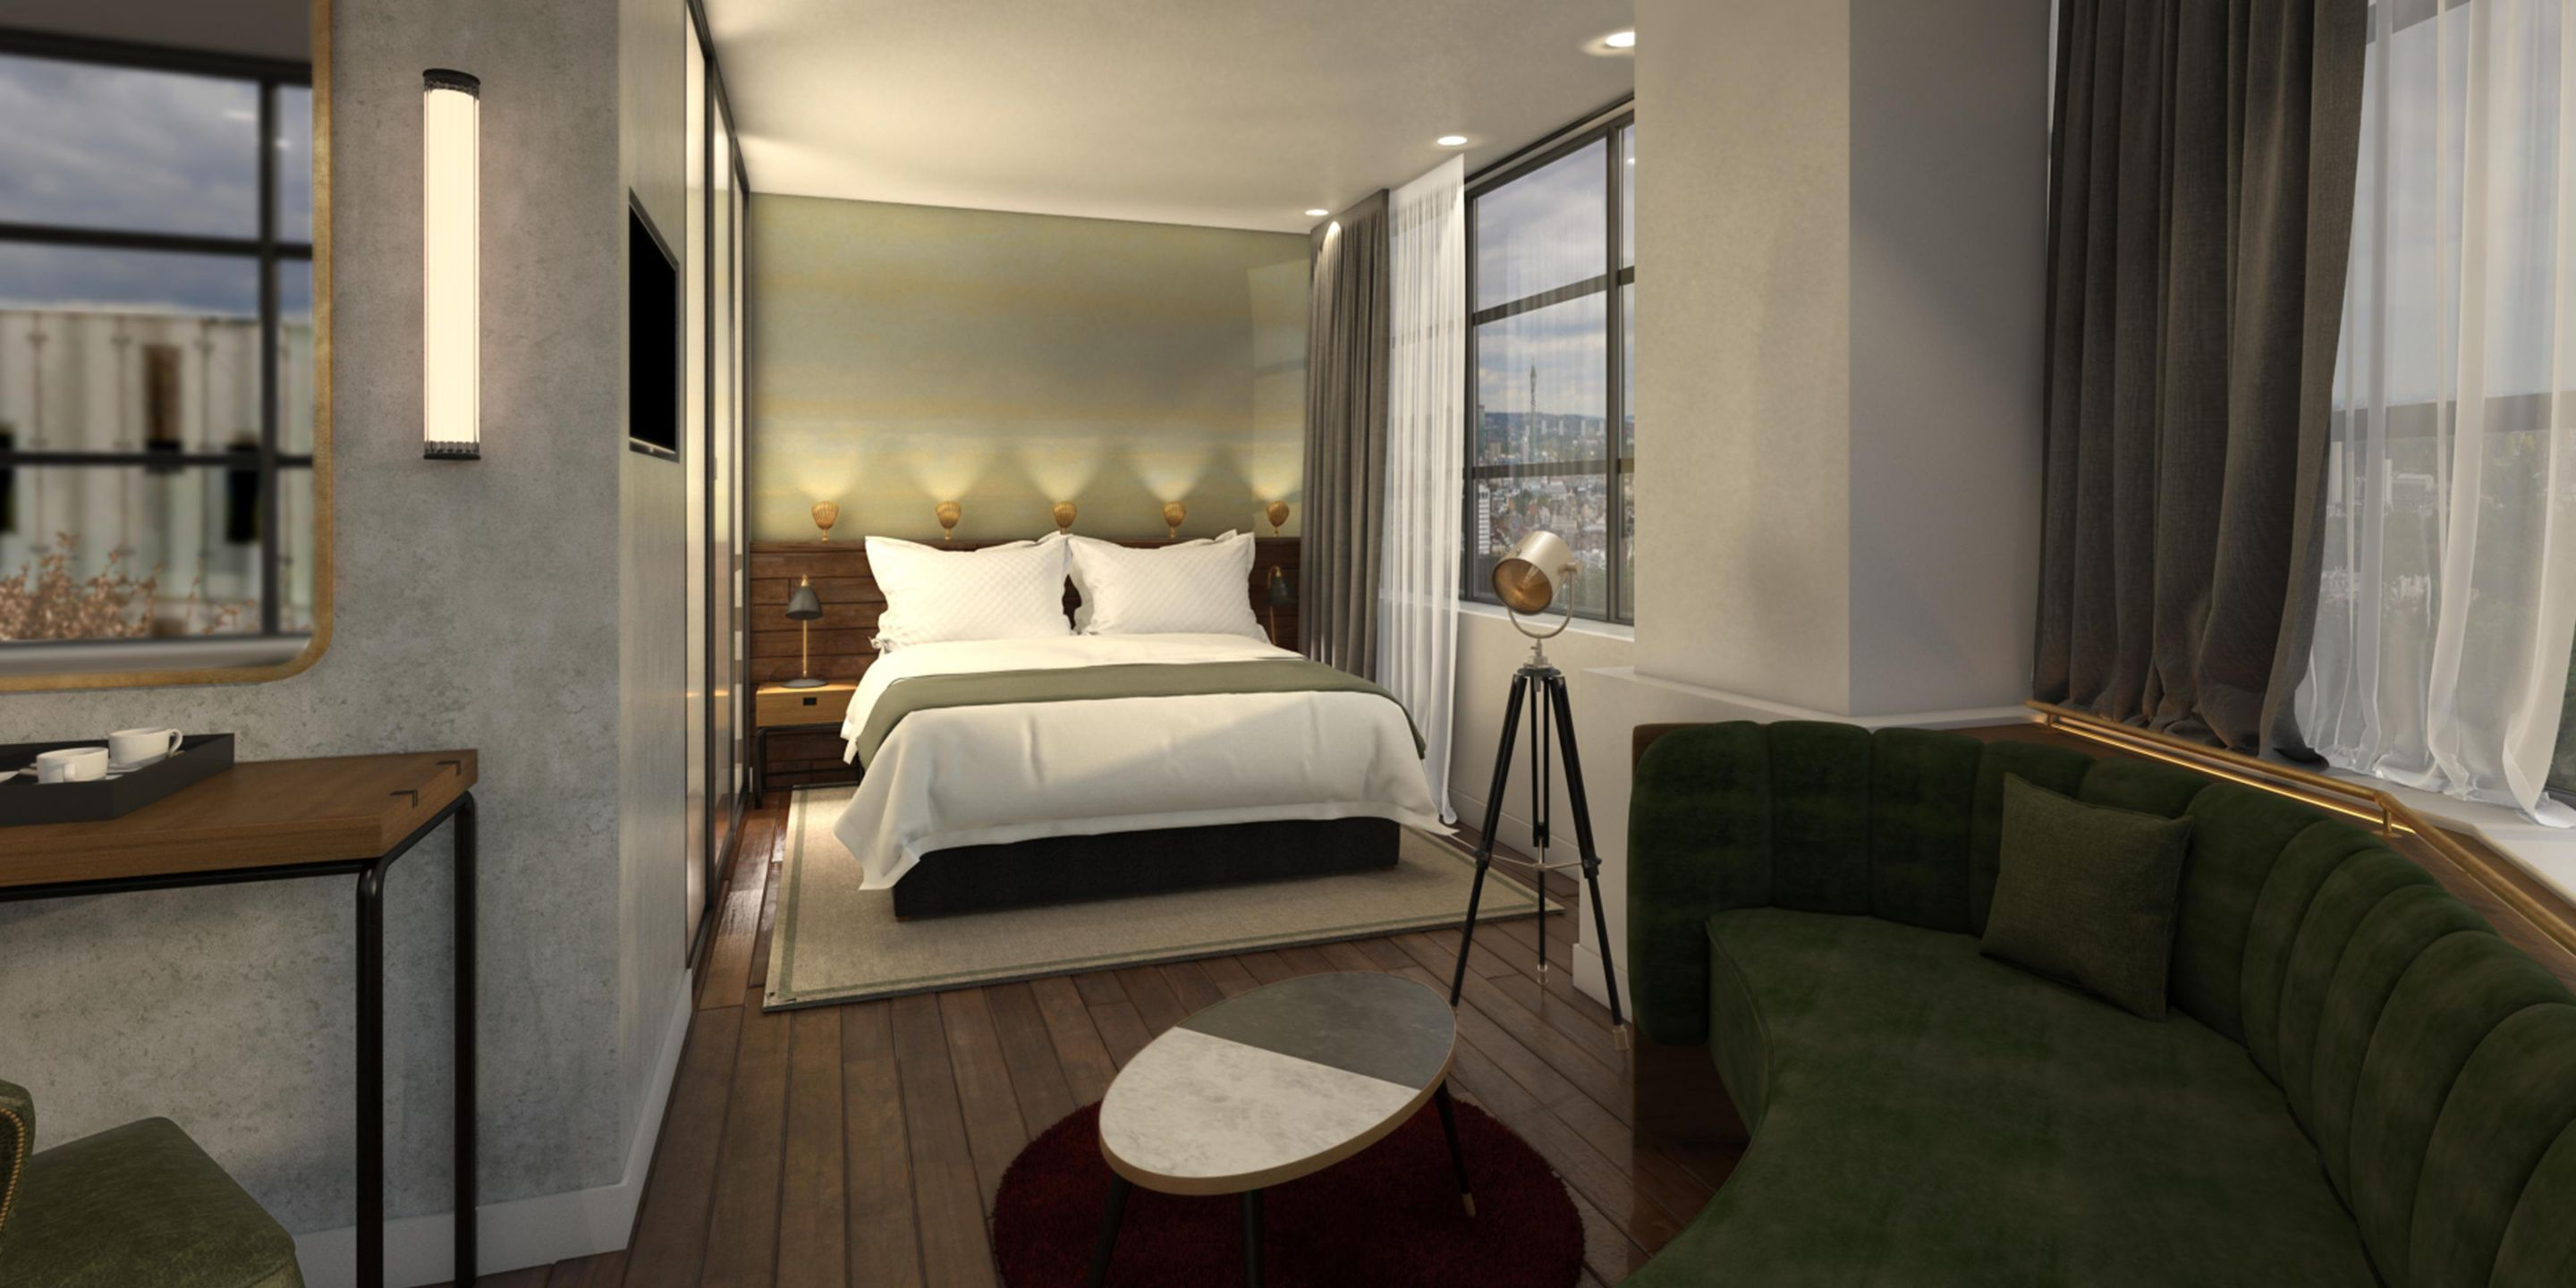 Hotel Indigo London 1 Leicester Square London Hotels